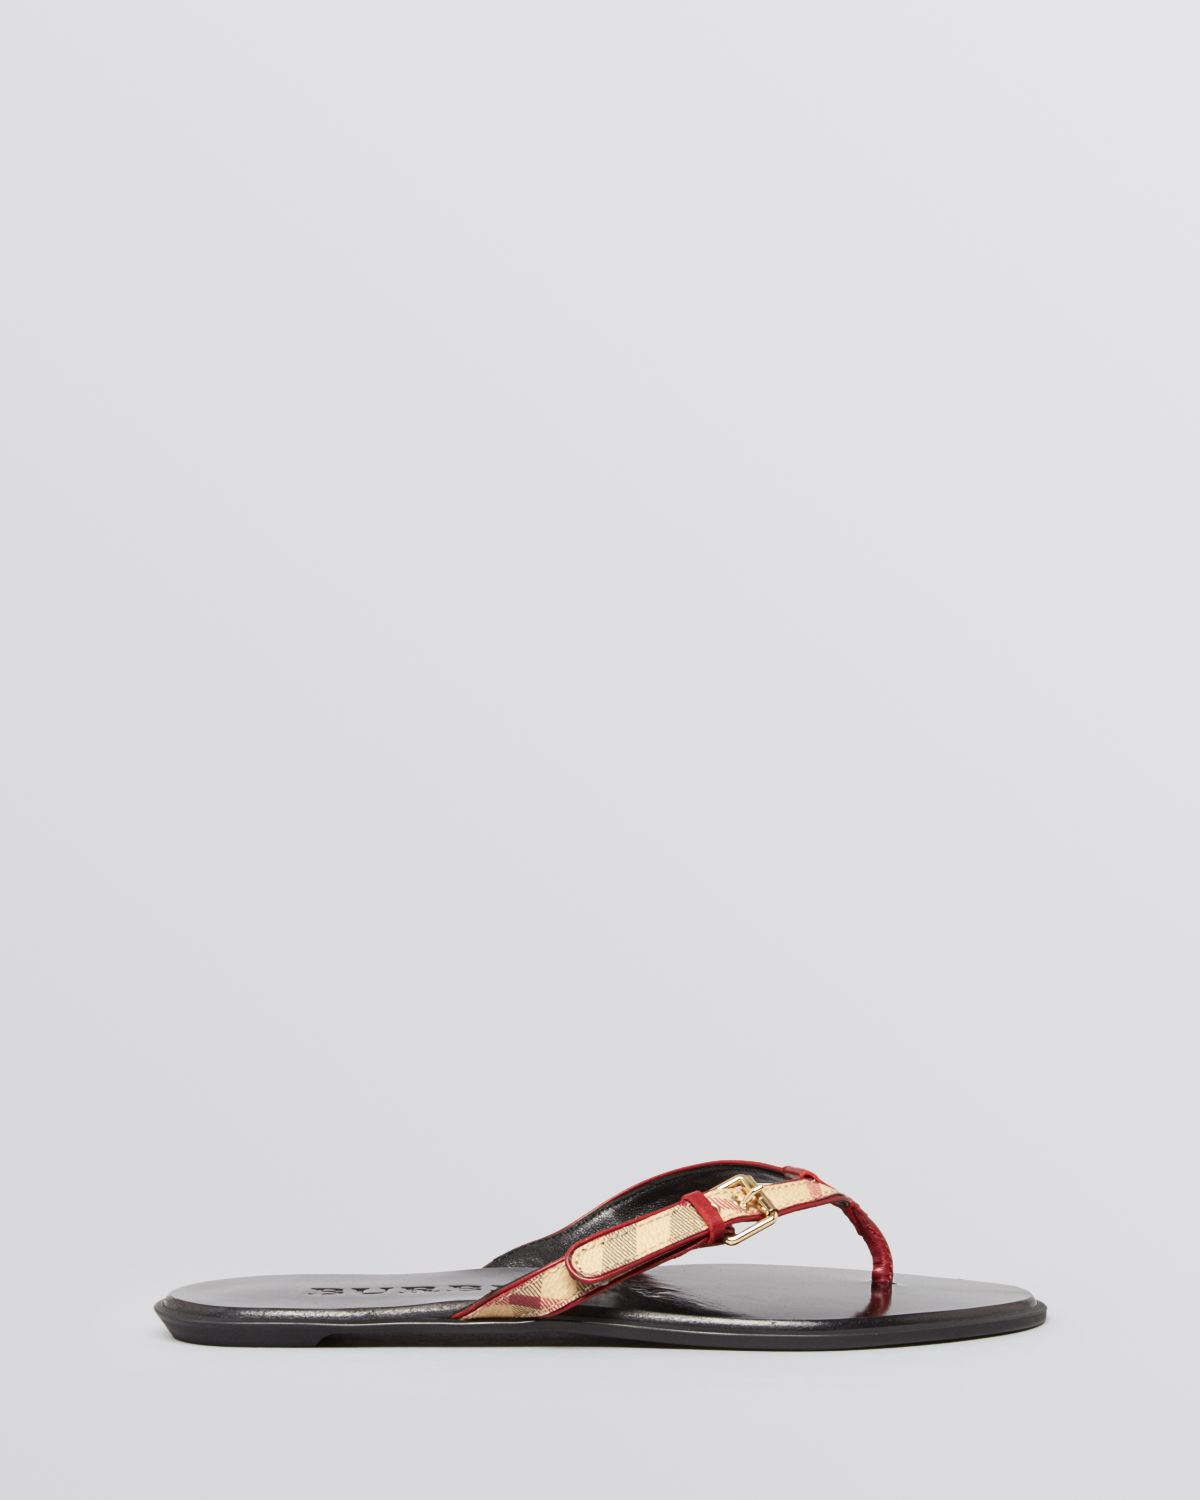 8e6a1f9163f8a Lyst - Burberry Flip Flop Sandals Parsons Check Thong in Red